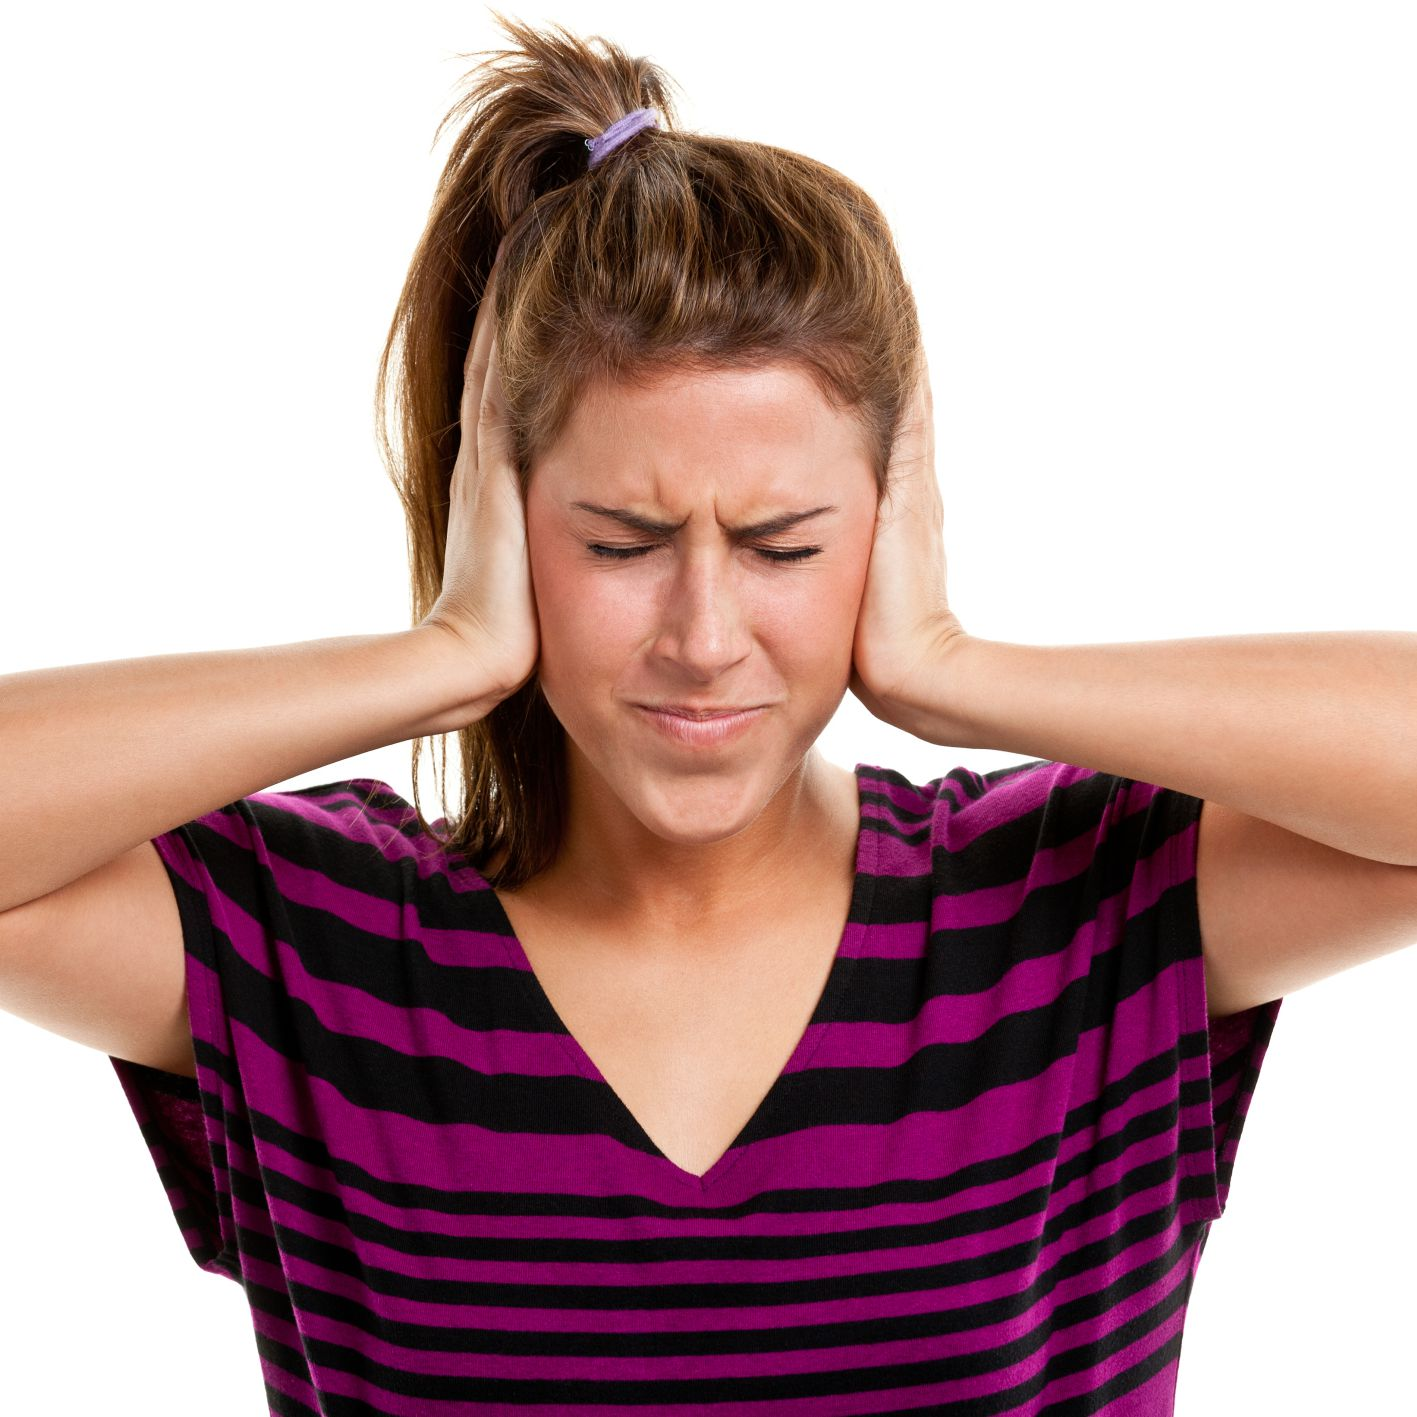 Coping Strategies for Tinnitus Symptoms